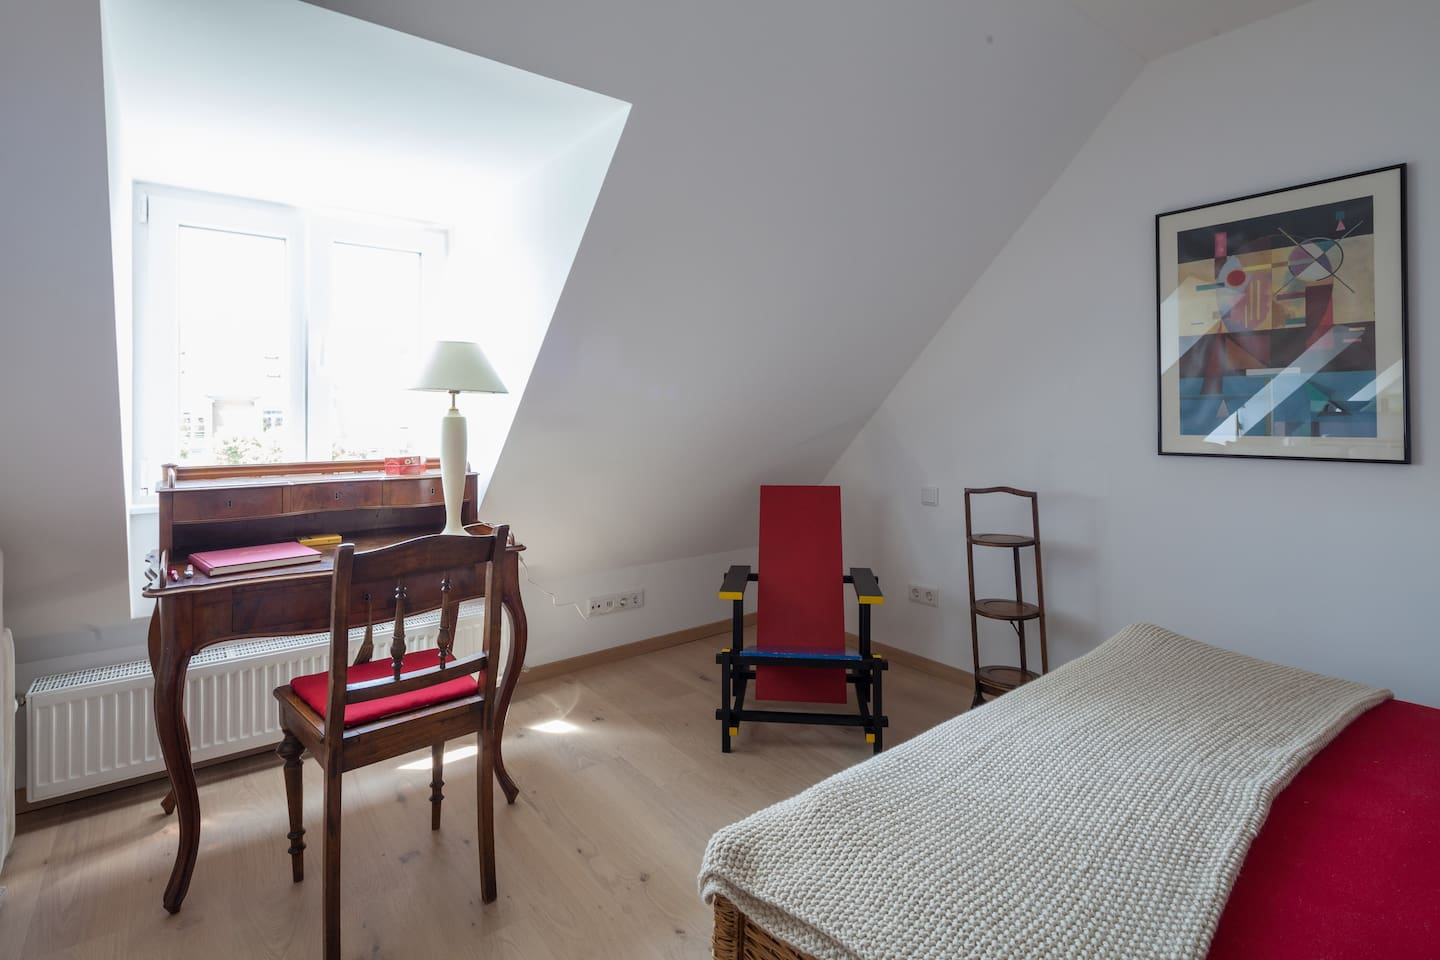 Top renoviertes studio in top lage houses for rent in münchen bayern germany